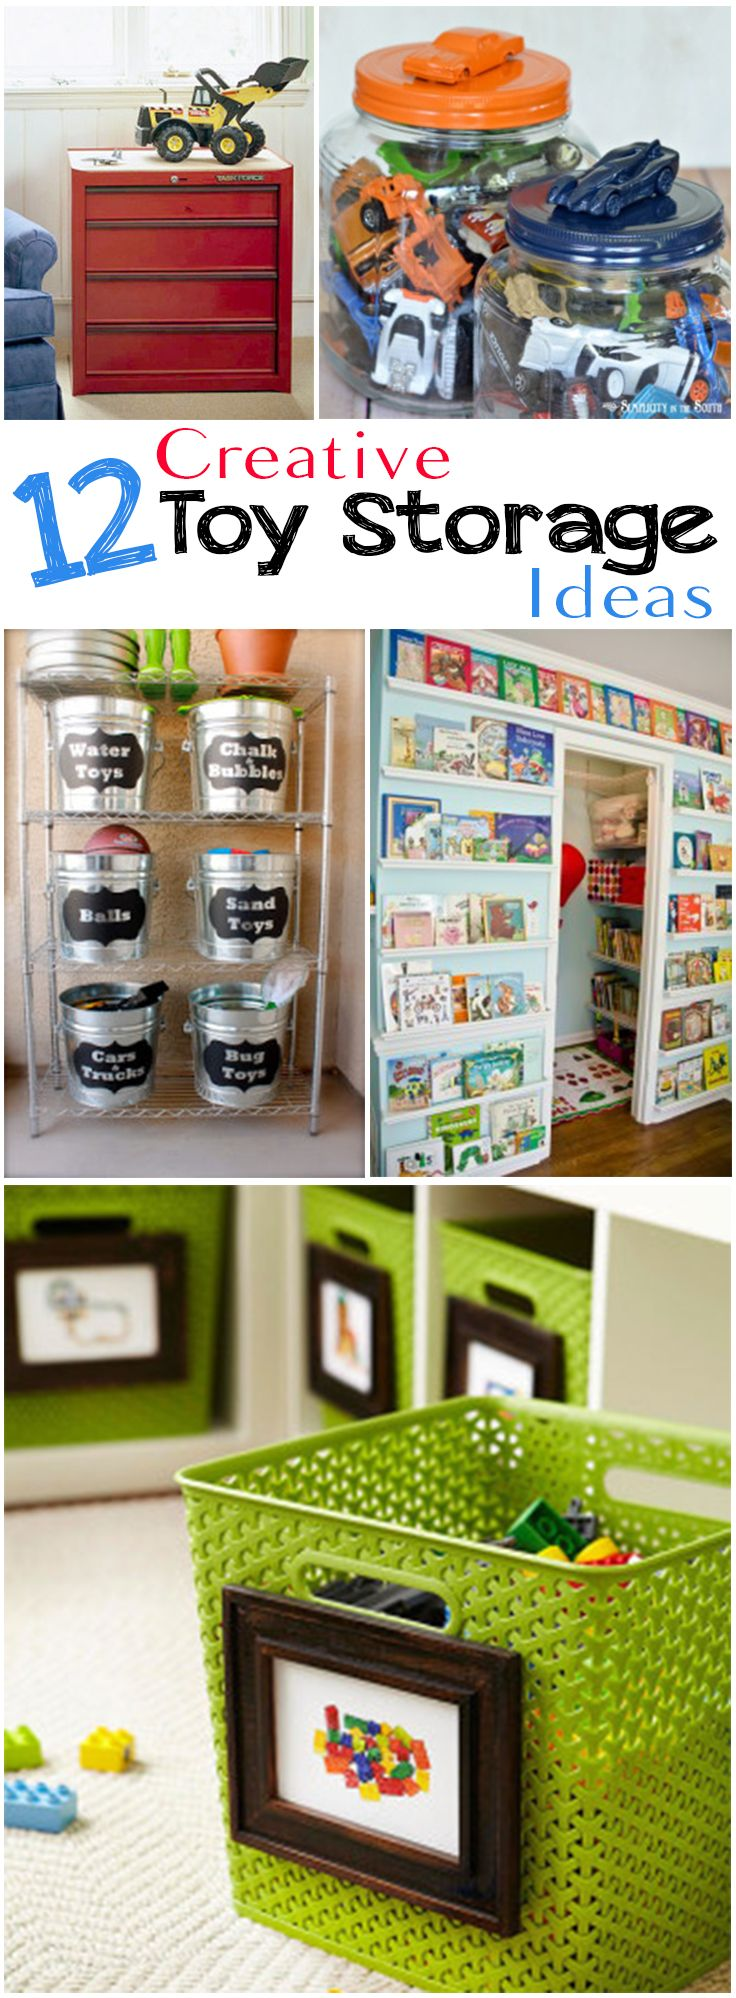 12 Creative Toy Storage Ideas 214 best